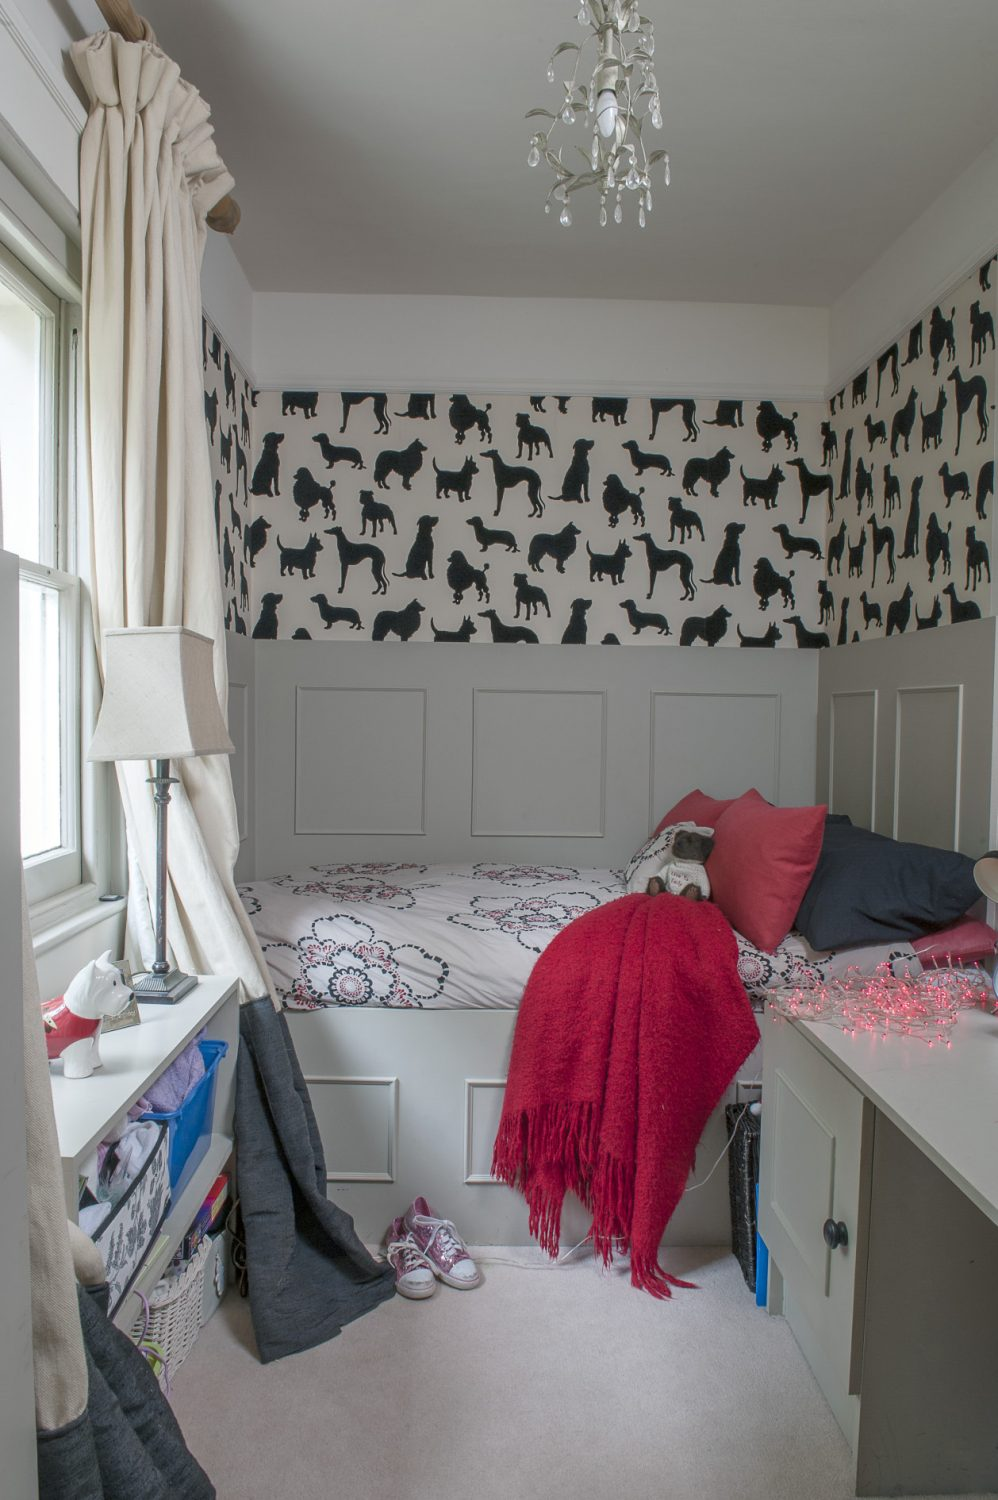 Younger daughter, Emily's room has been papered in Osborne & Little's 'Walk in the Park' flock wallpaper